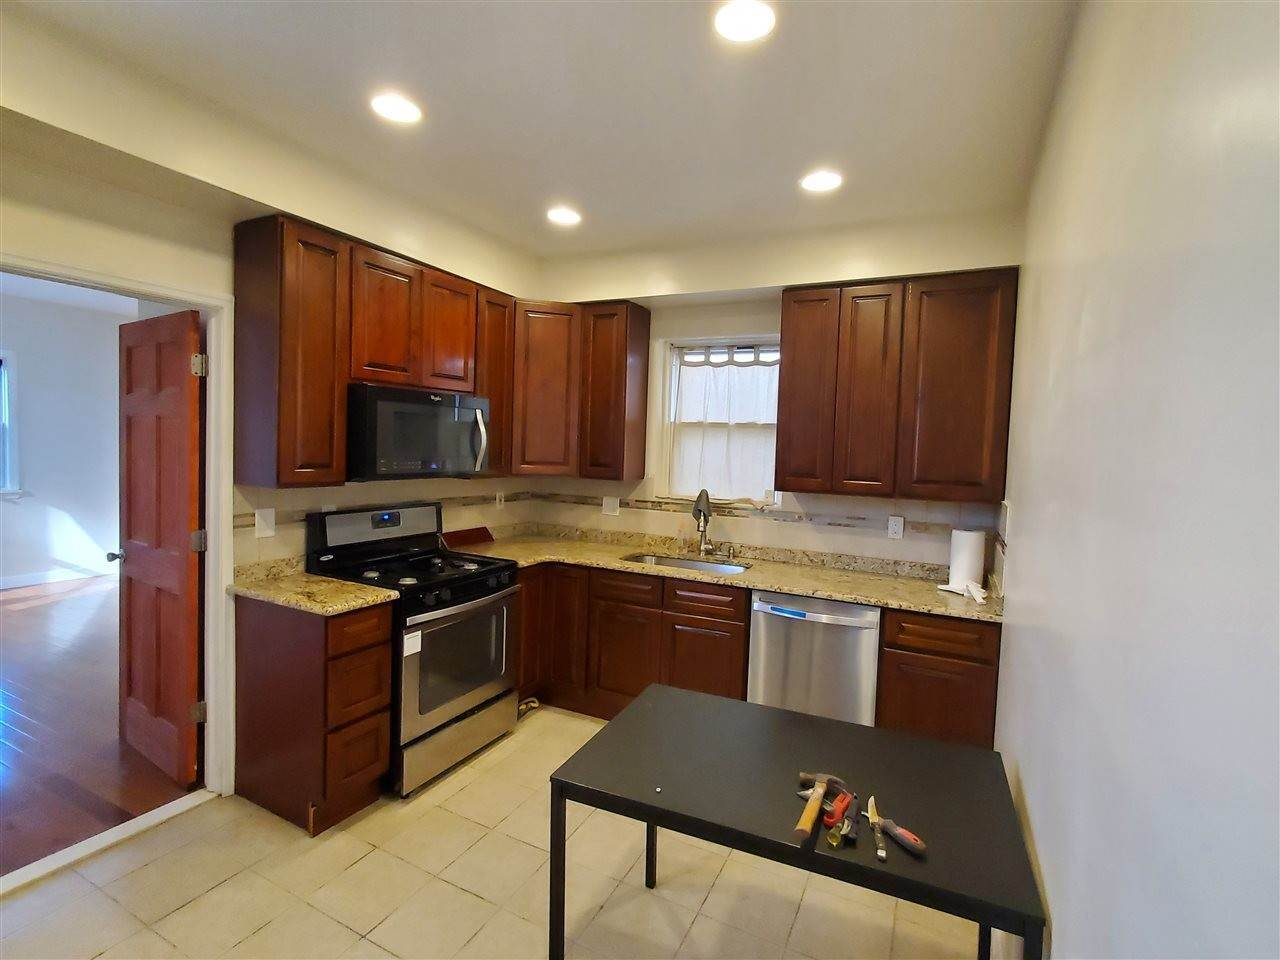 6. Single Family Home for Rent at 27 NELSON AVENUE #APT # Jersey City, New Jersey, 07307 United States